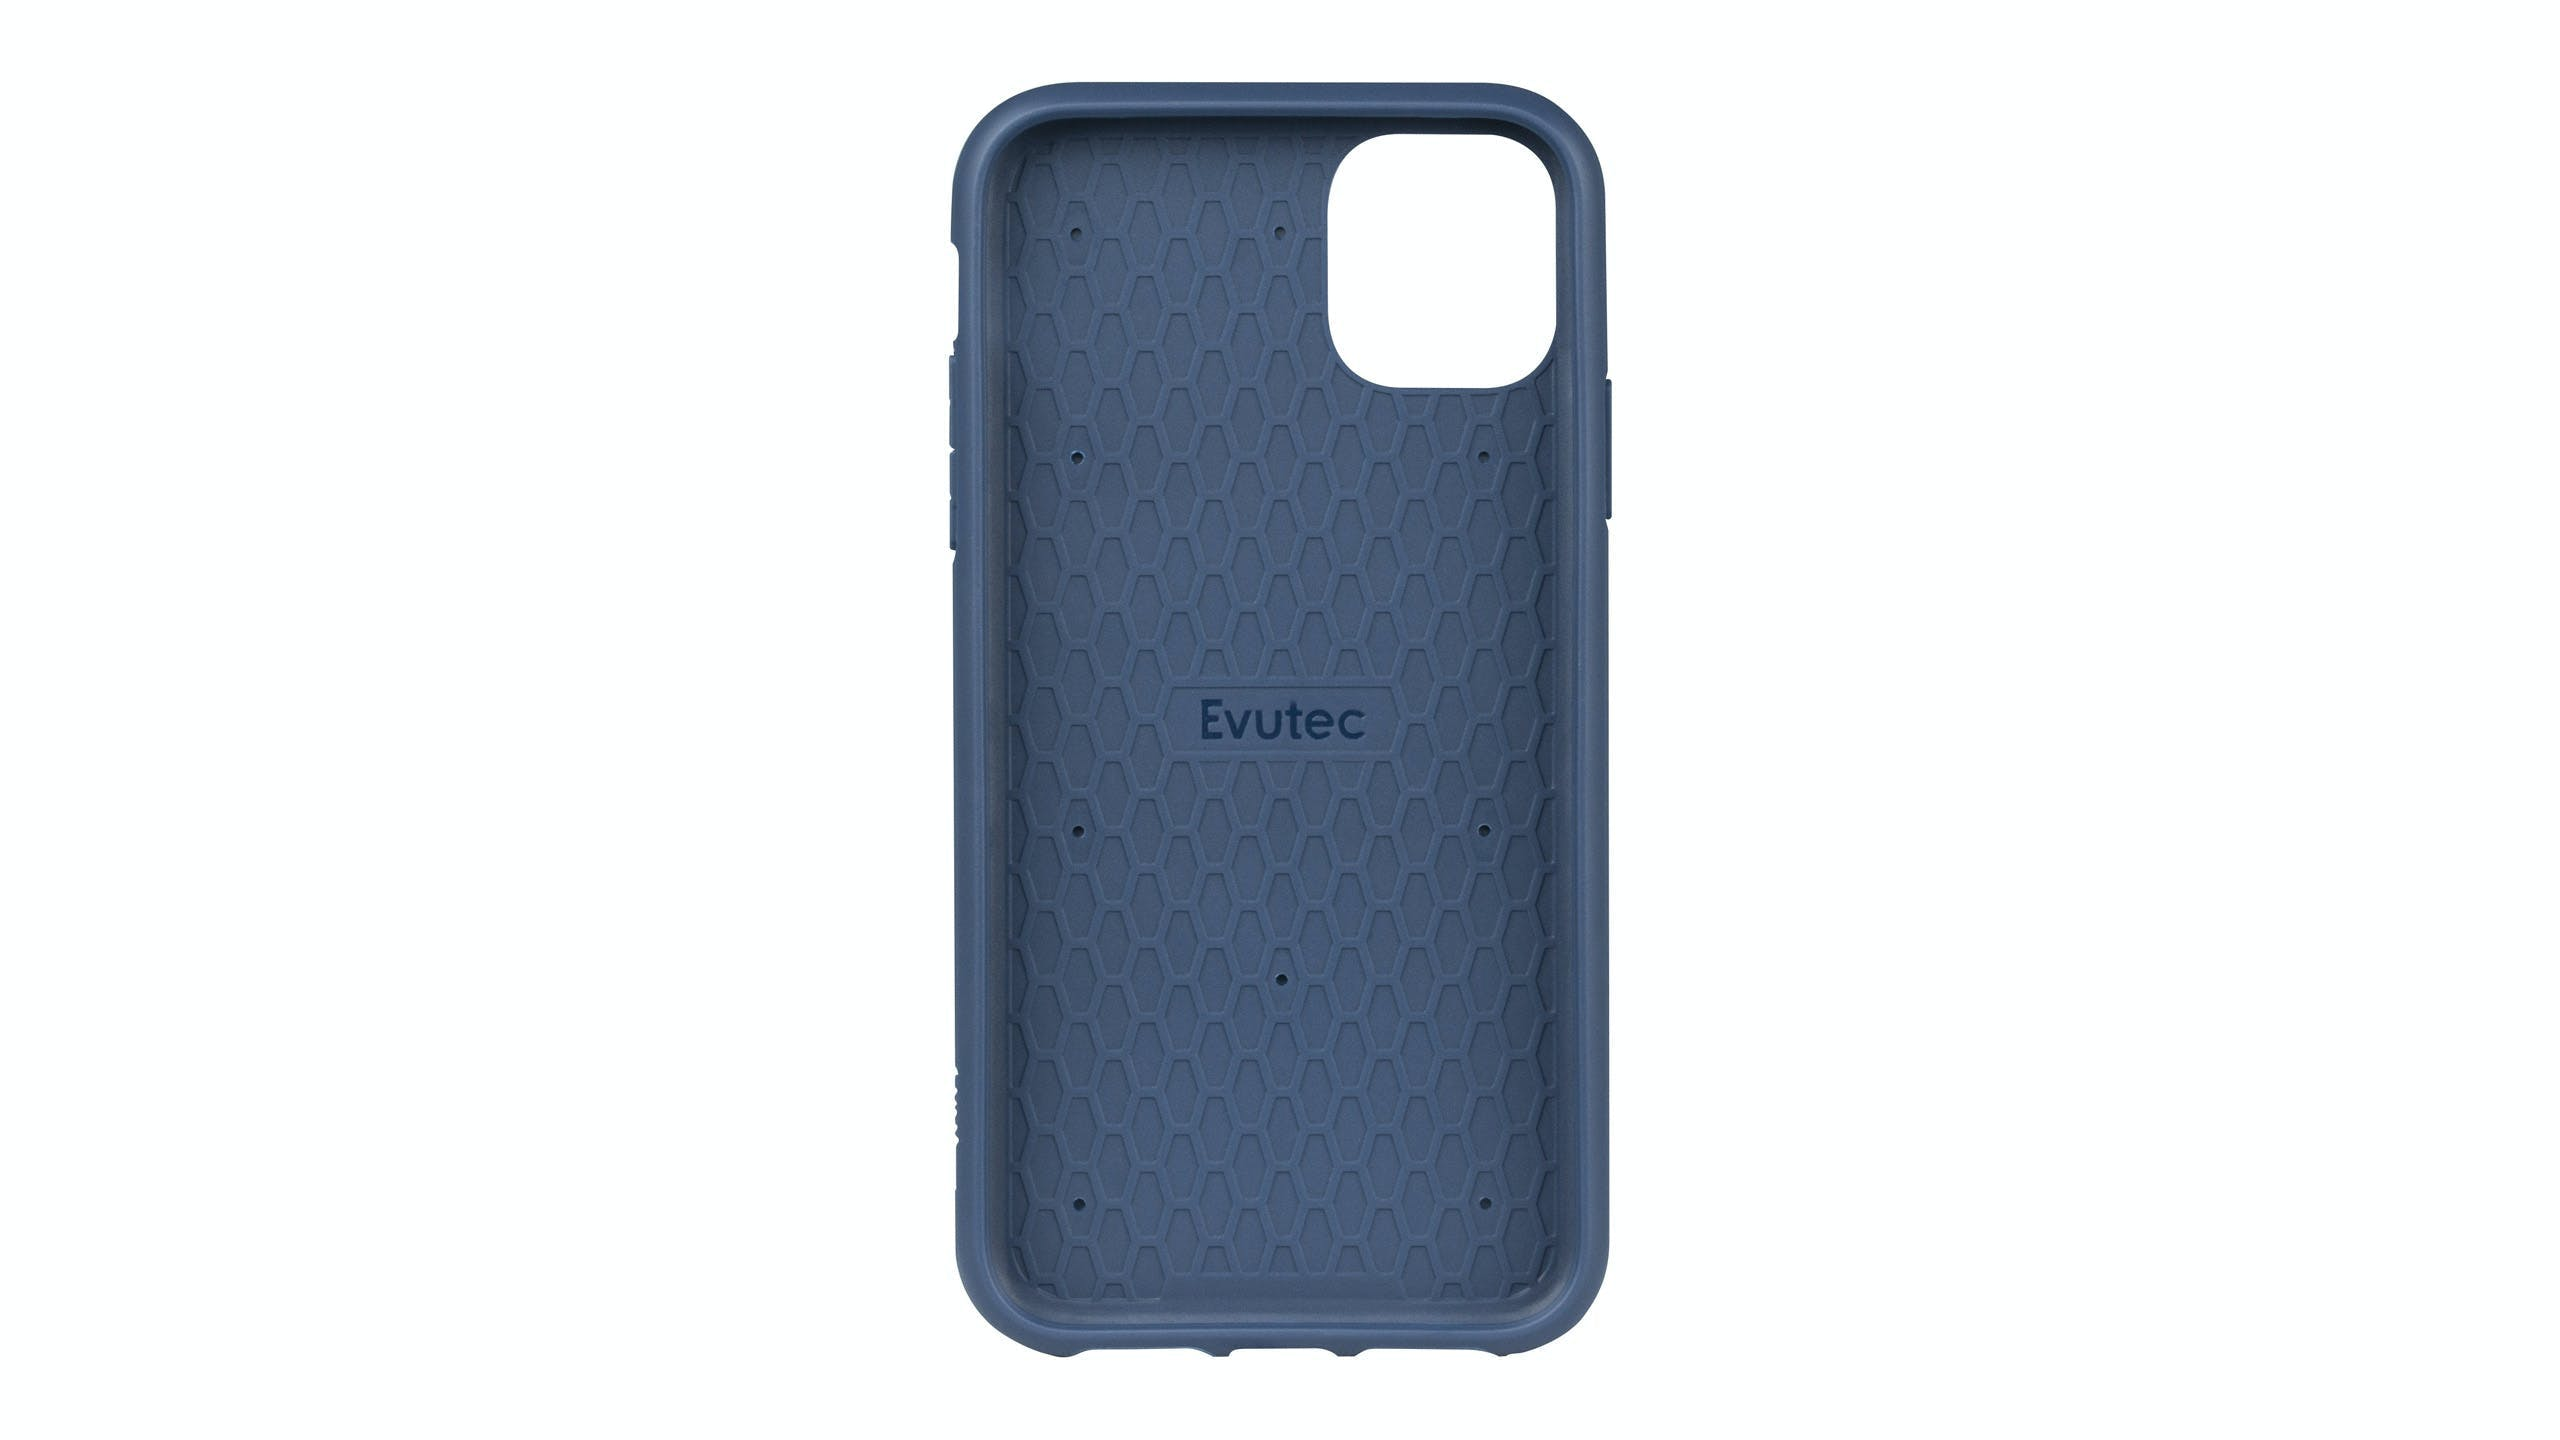 Evutec IPhone 11 Pro Max Ballistic Nylon Case - Blue